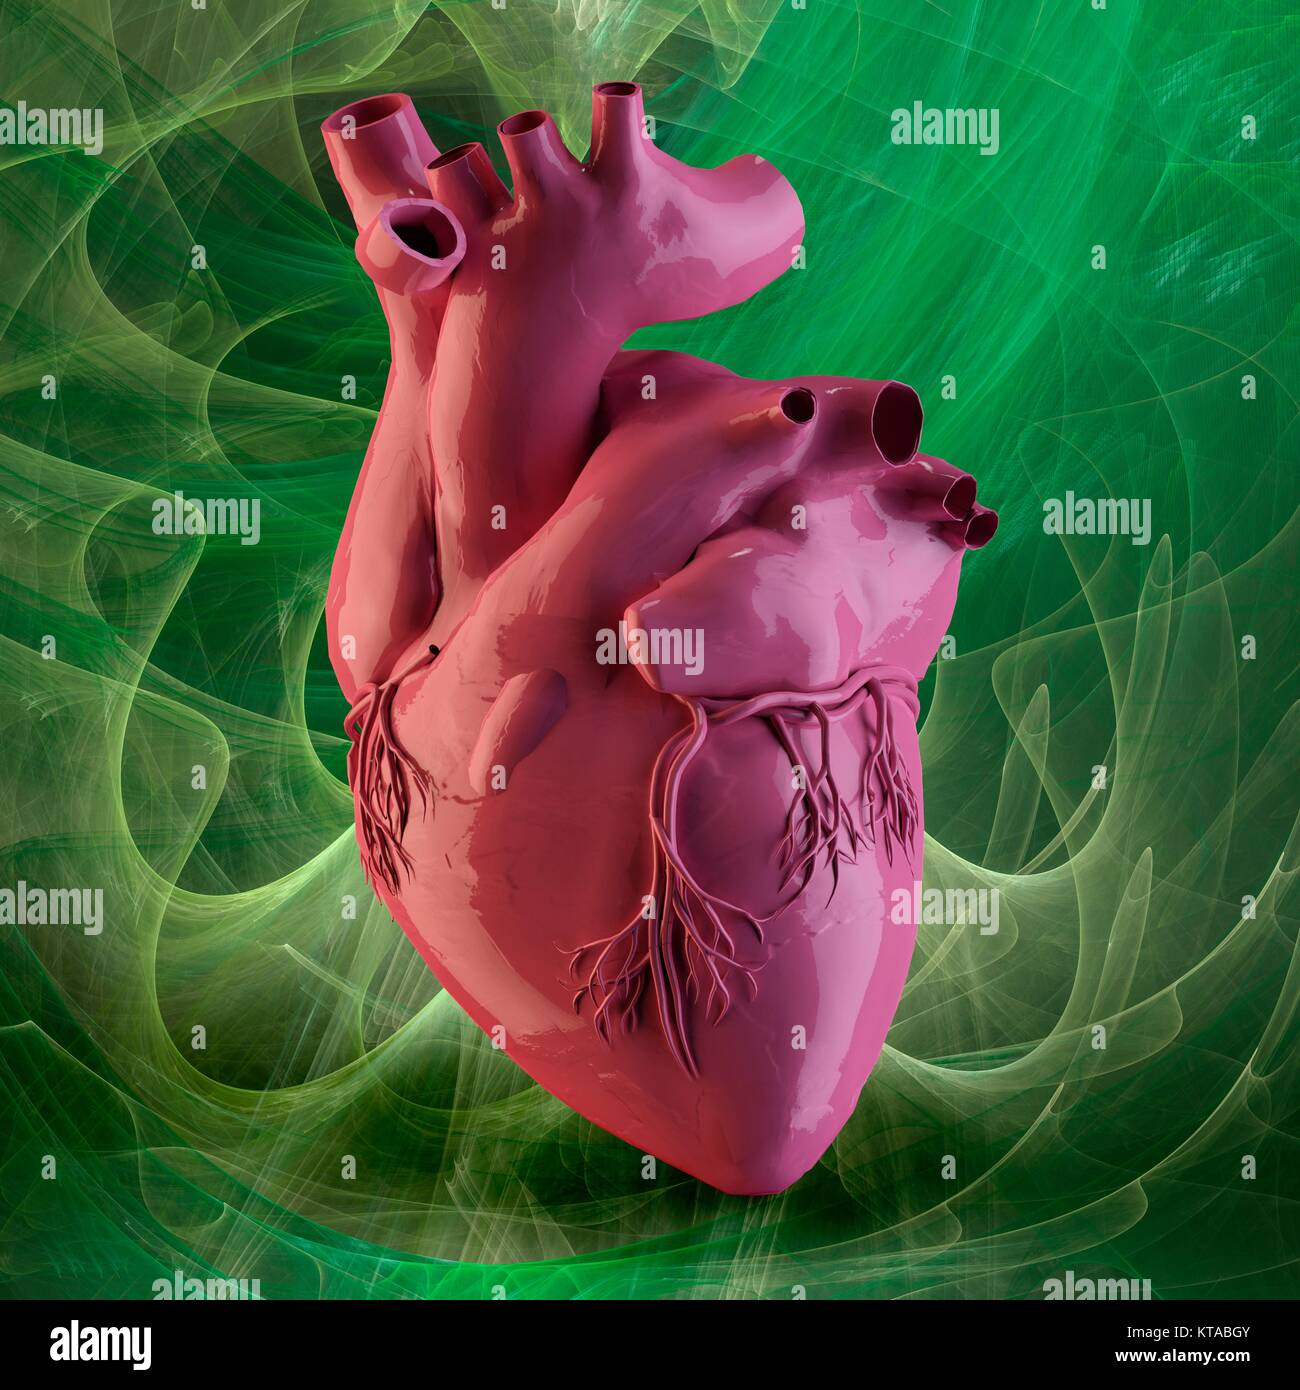 Heart and coronary arteries.3D computer illustration of the external ...